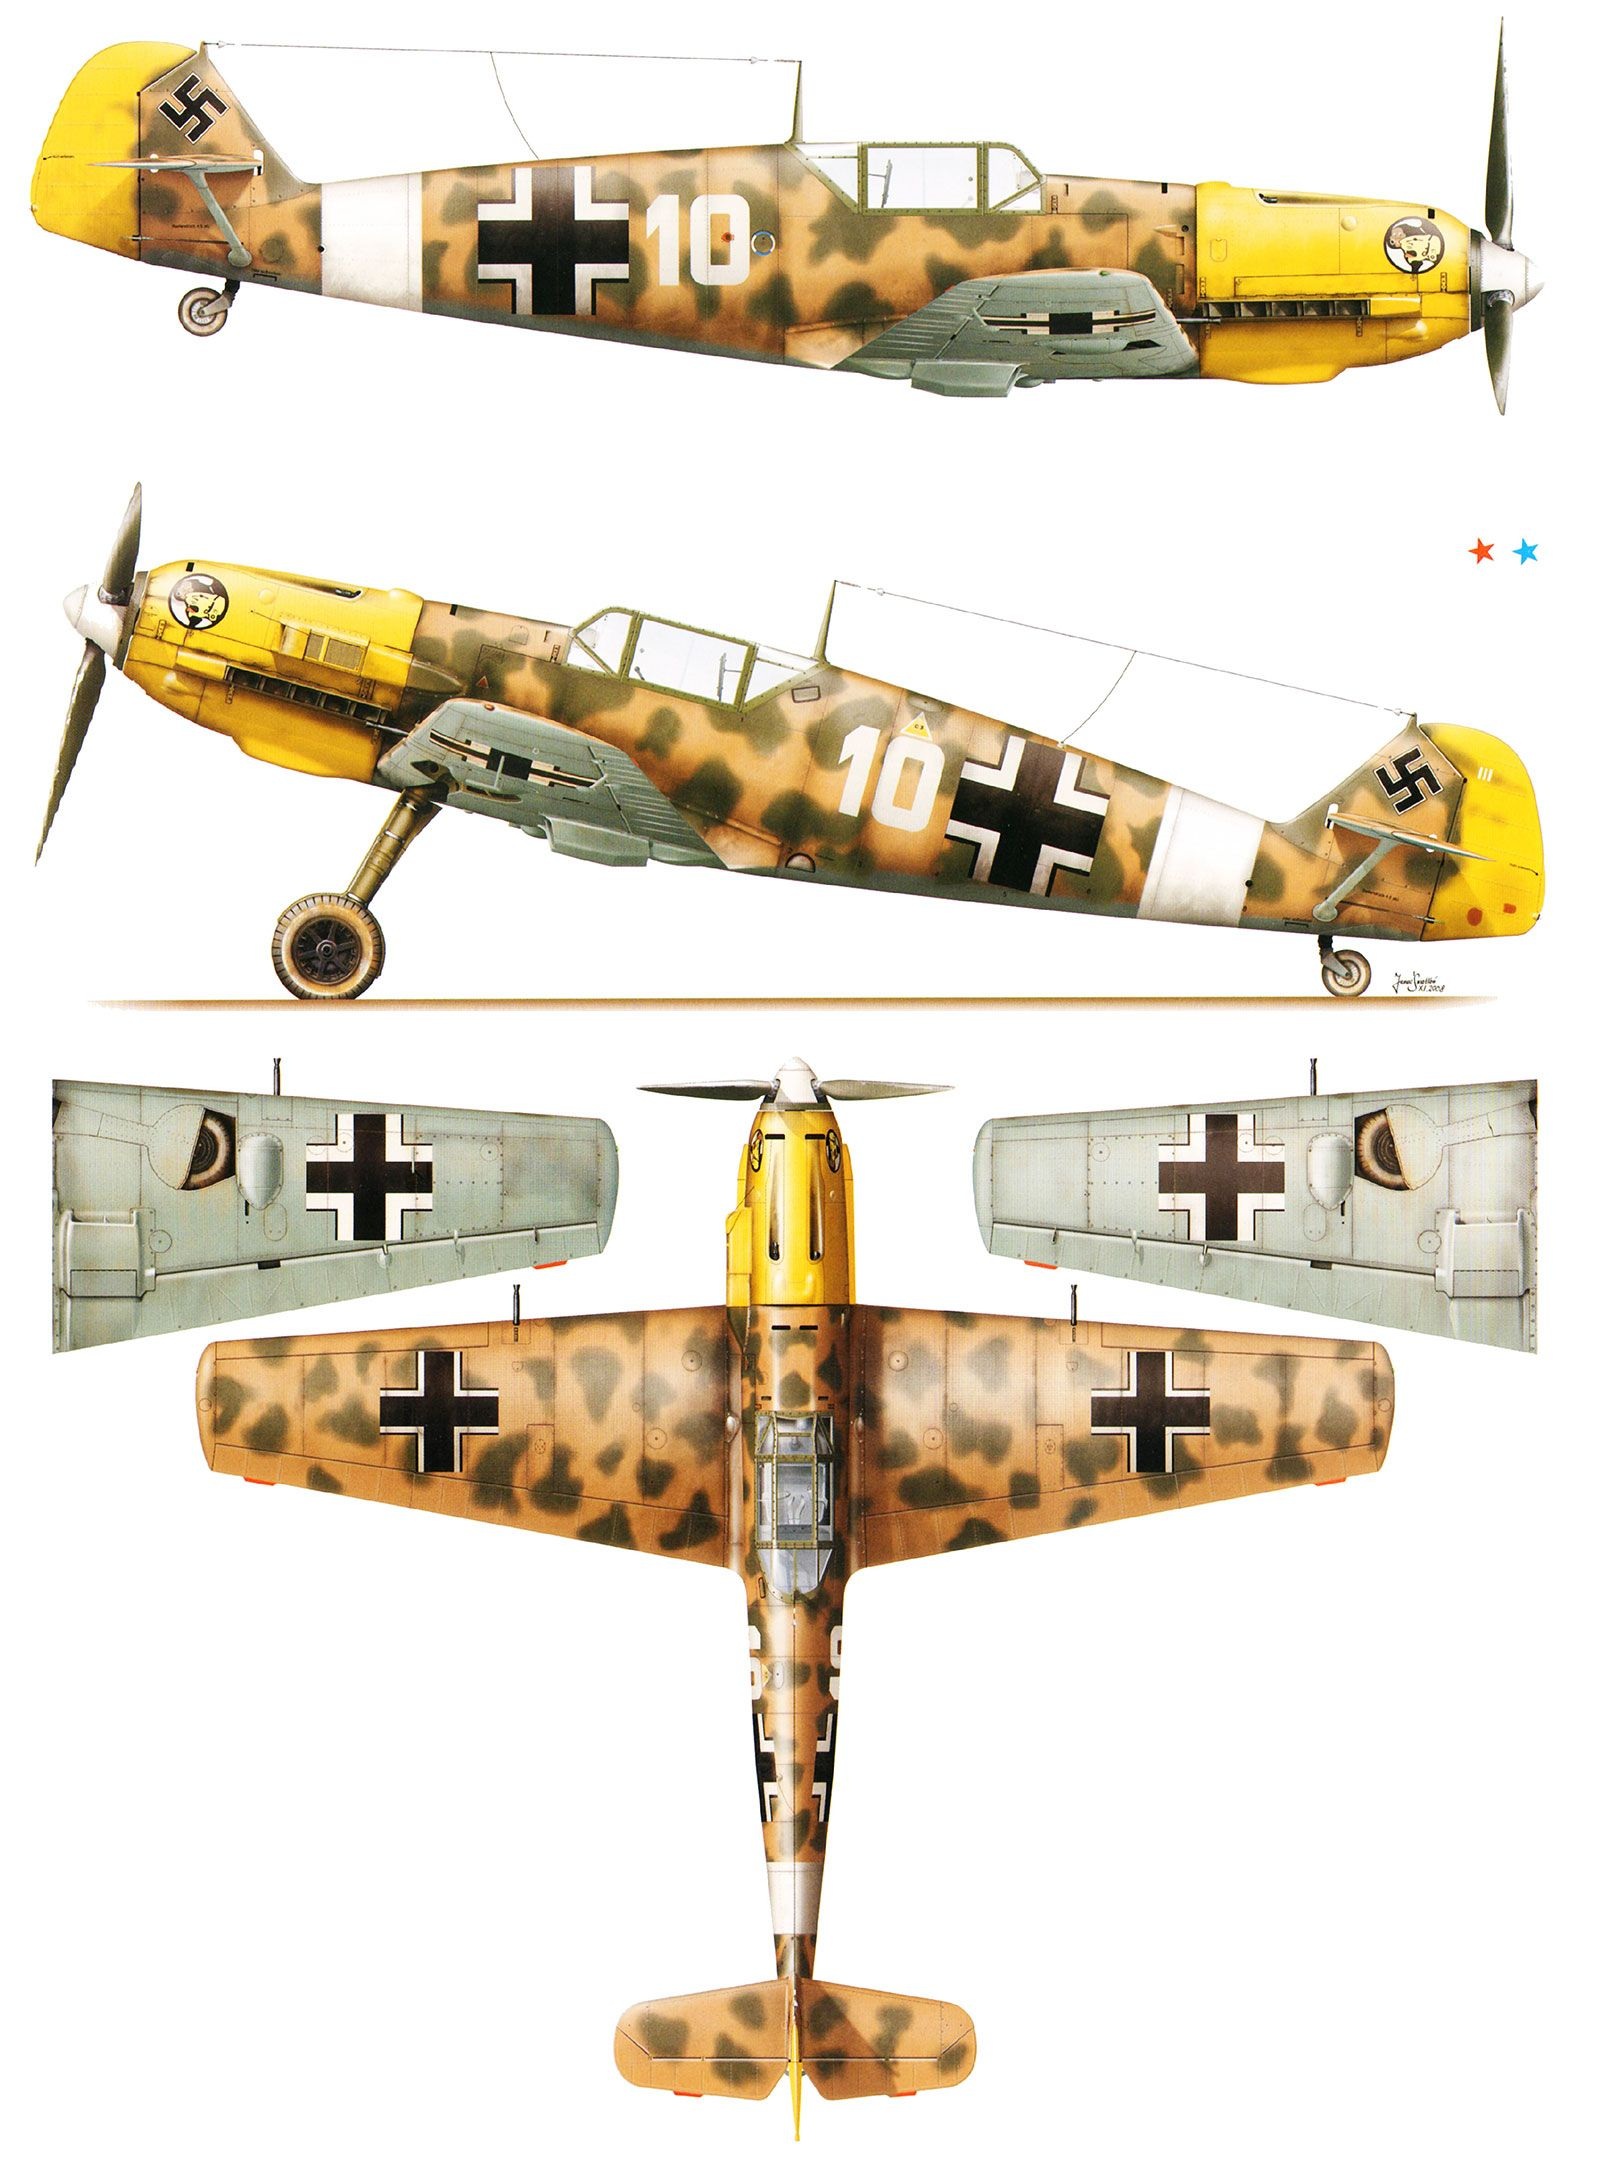 messerschmitt bf 109 coloring pages - photo#23